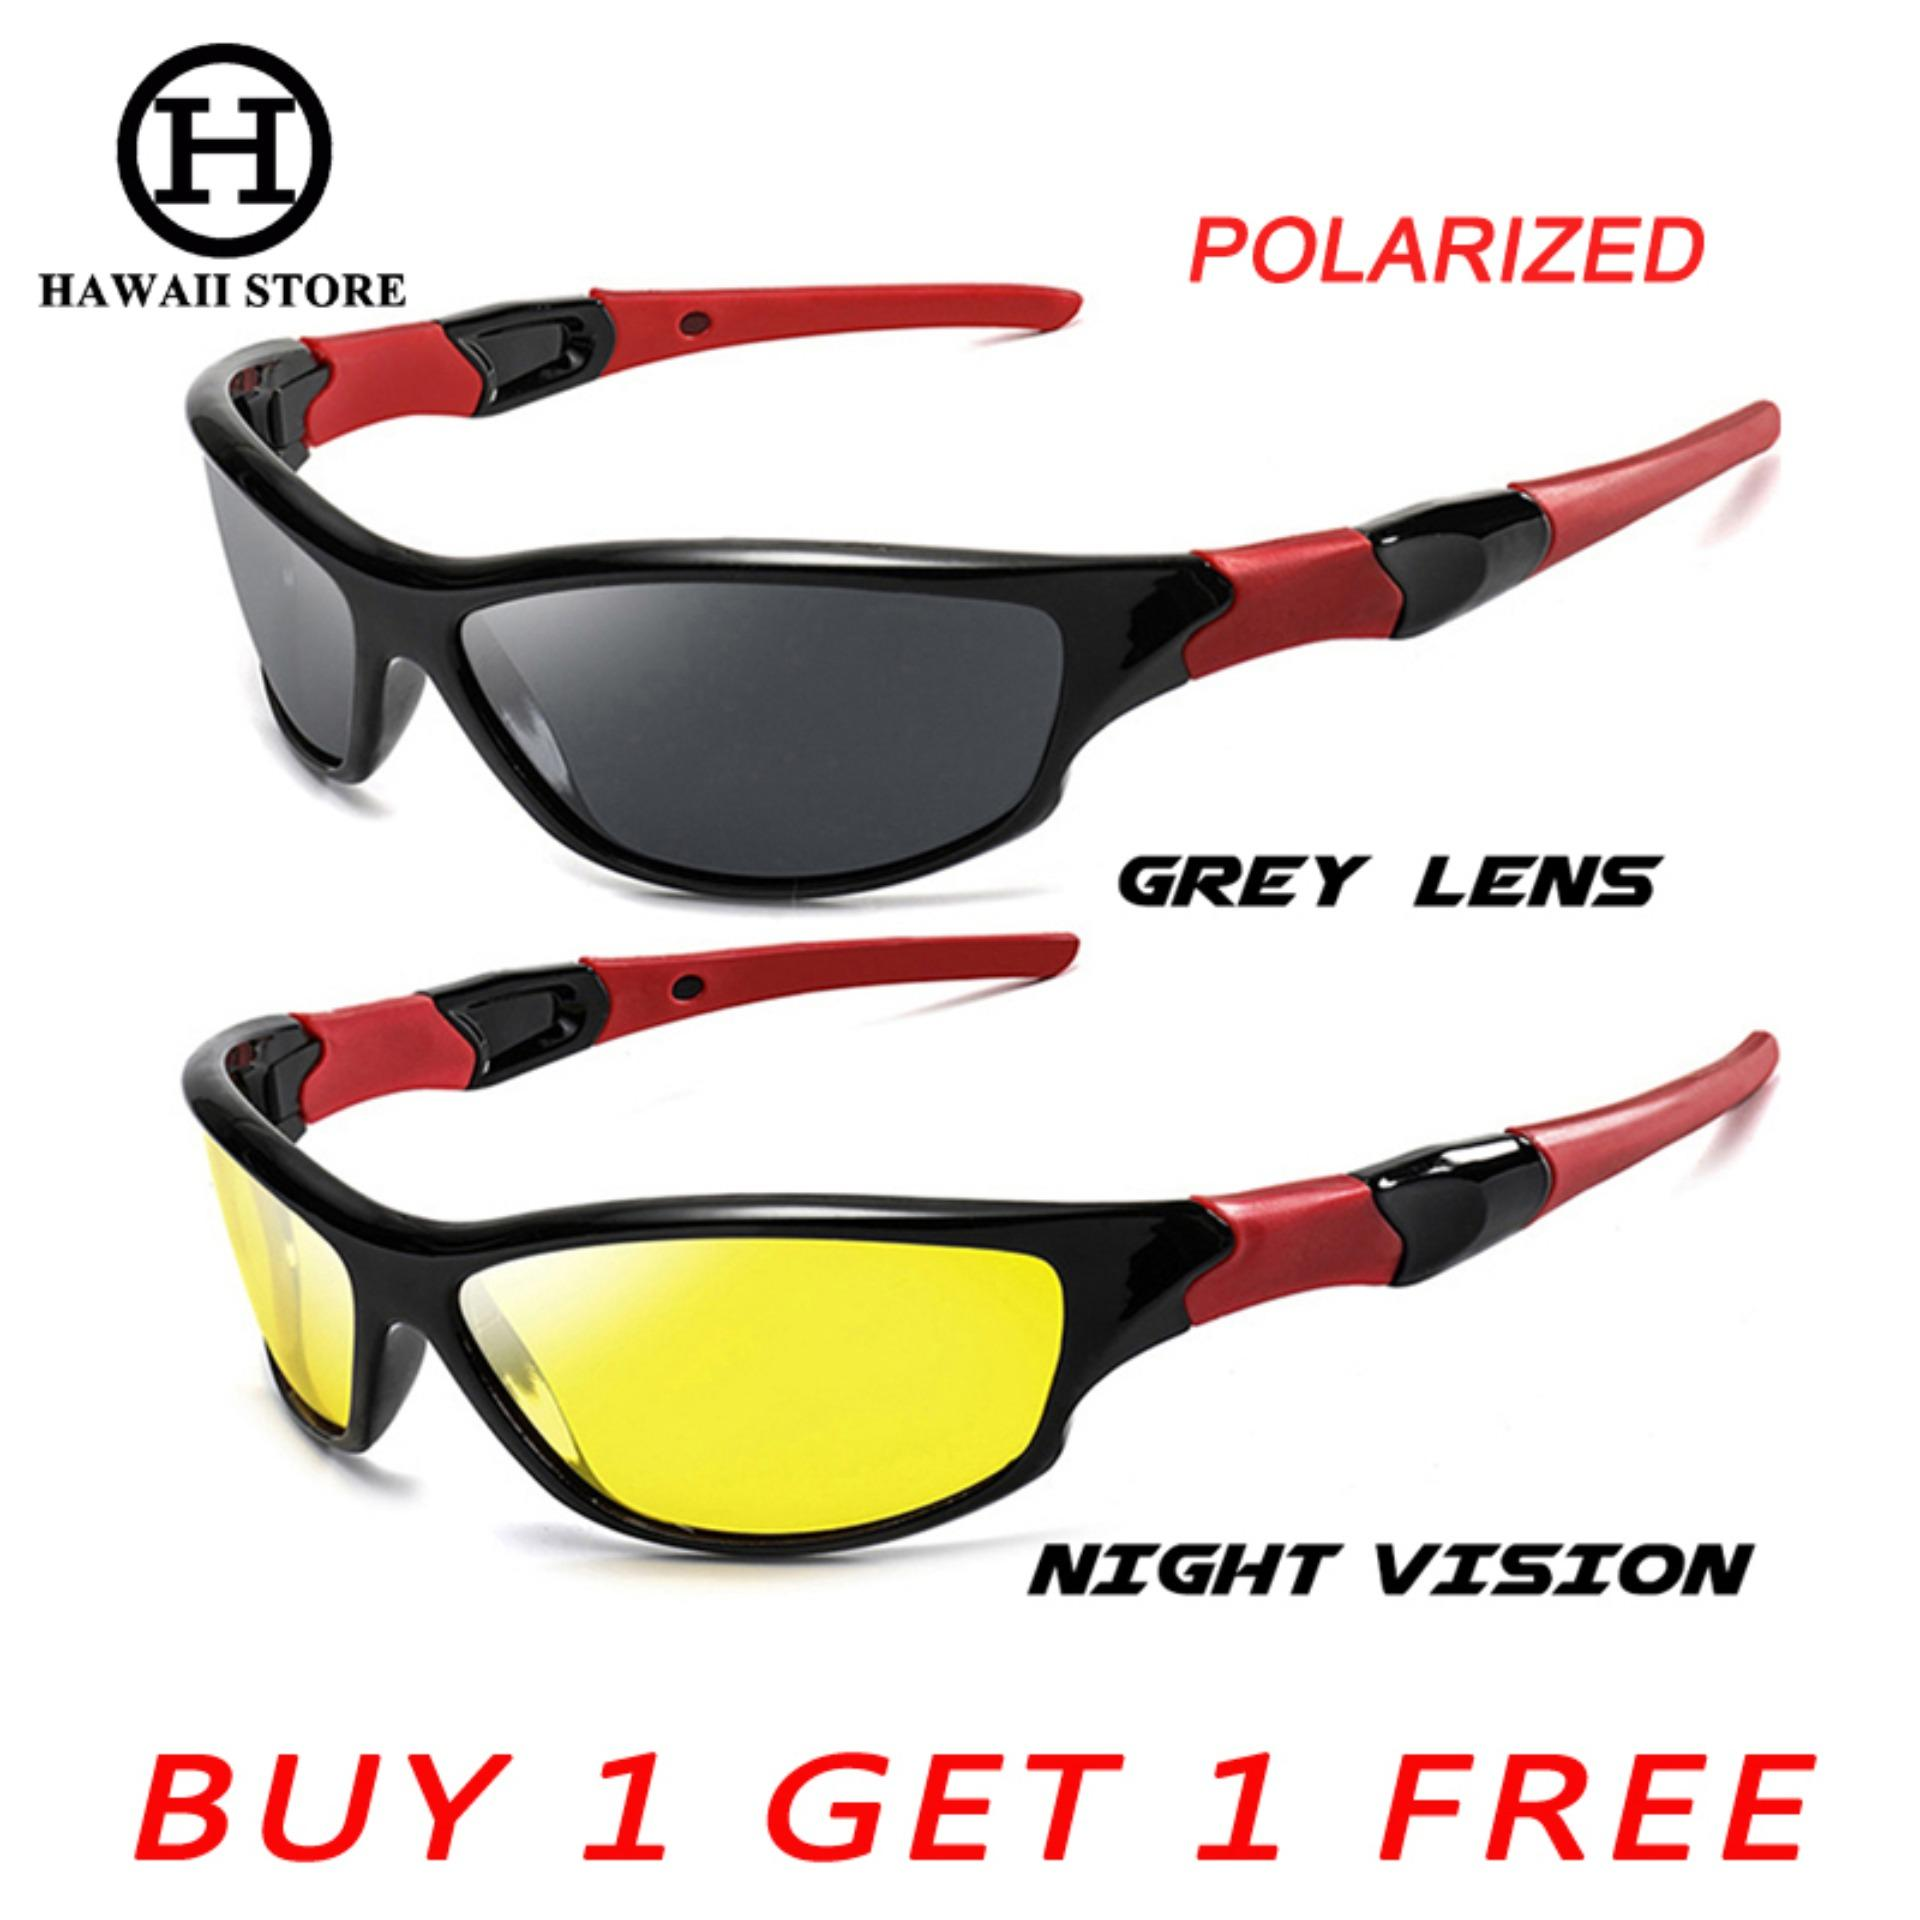 8a475d78eb10 HAWAII Polarized Night Driving Glasses For Men High Quality Anti Glare  Safety HD Night Vision Square